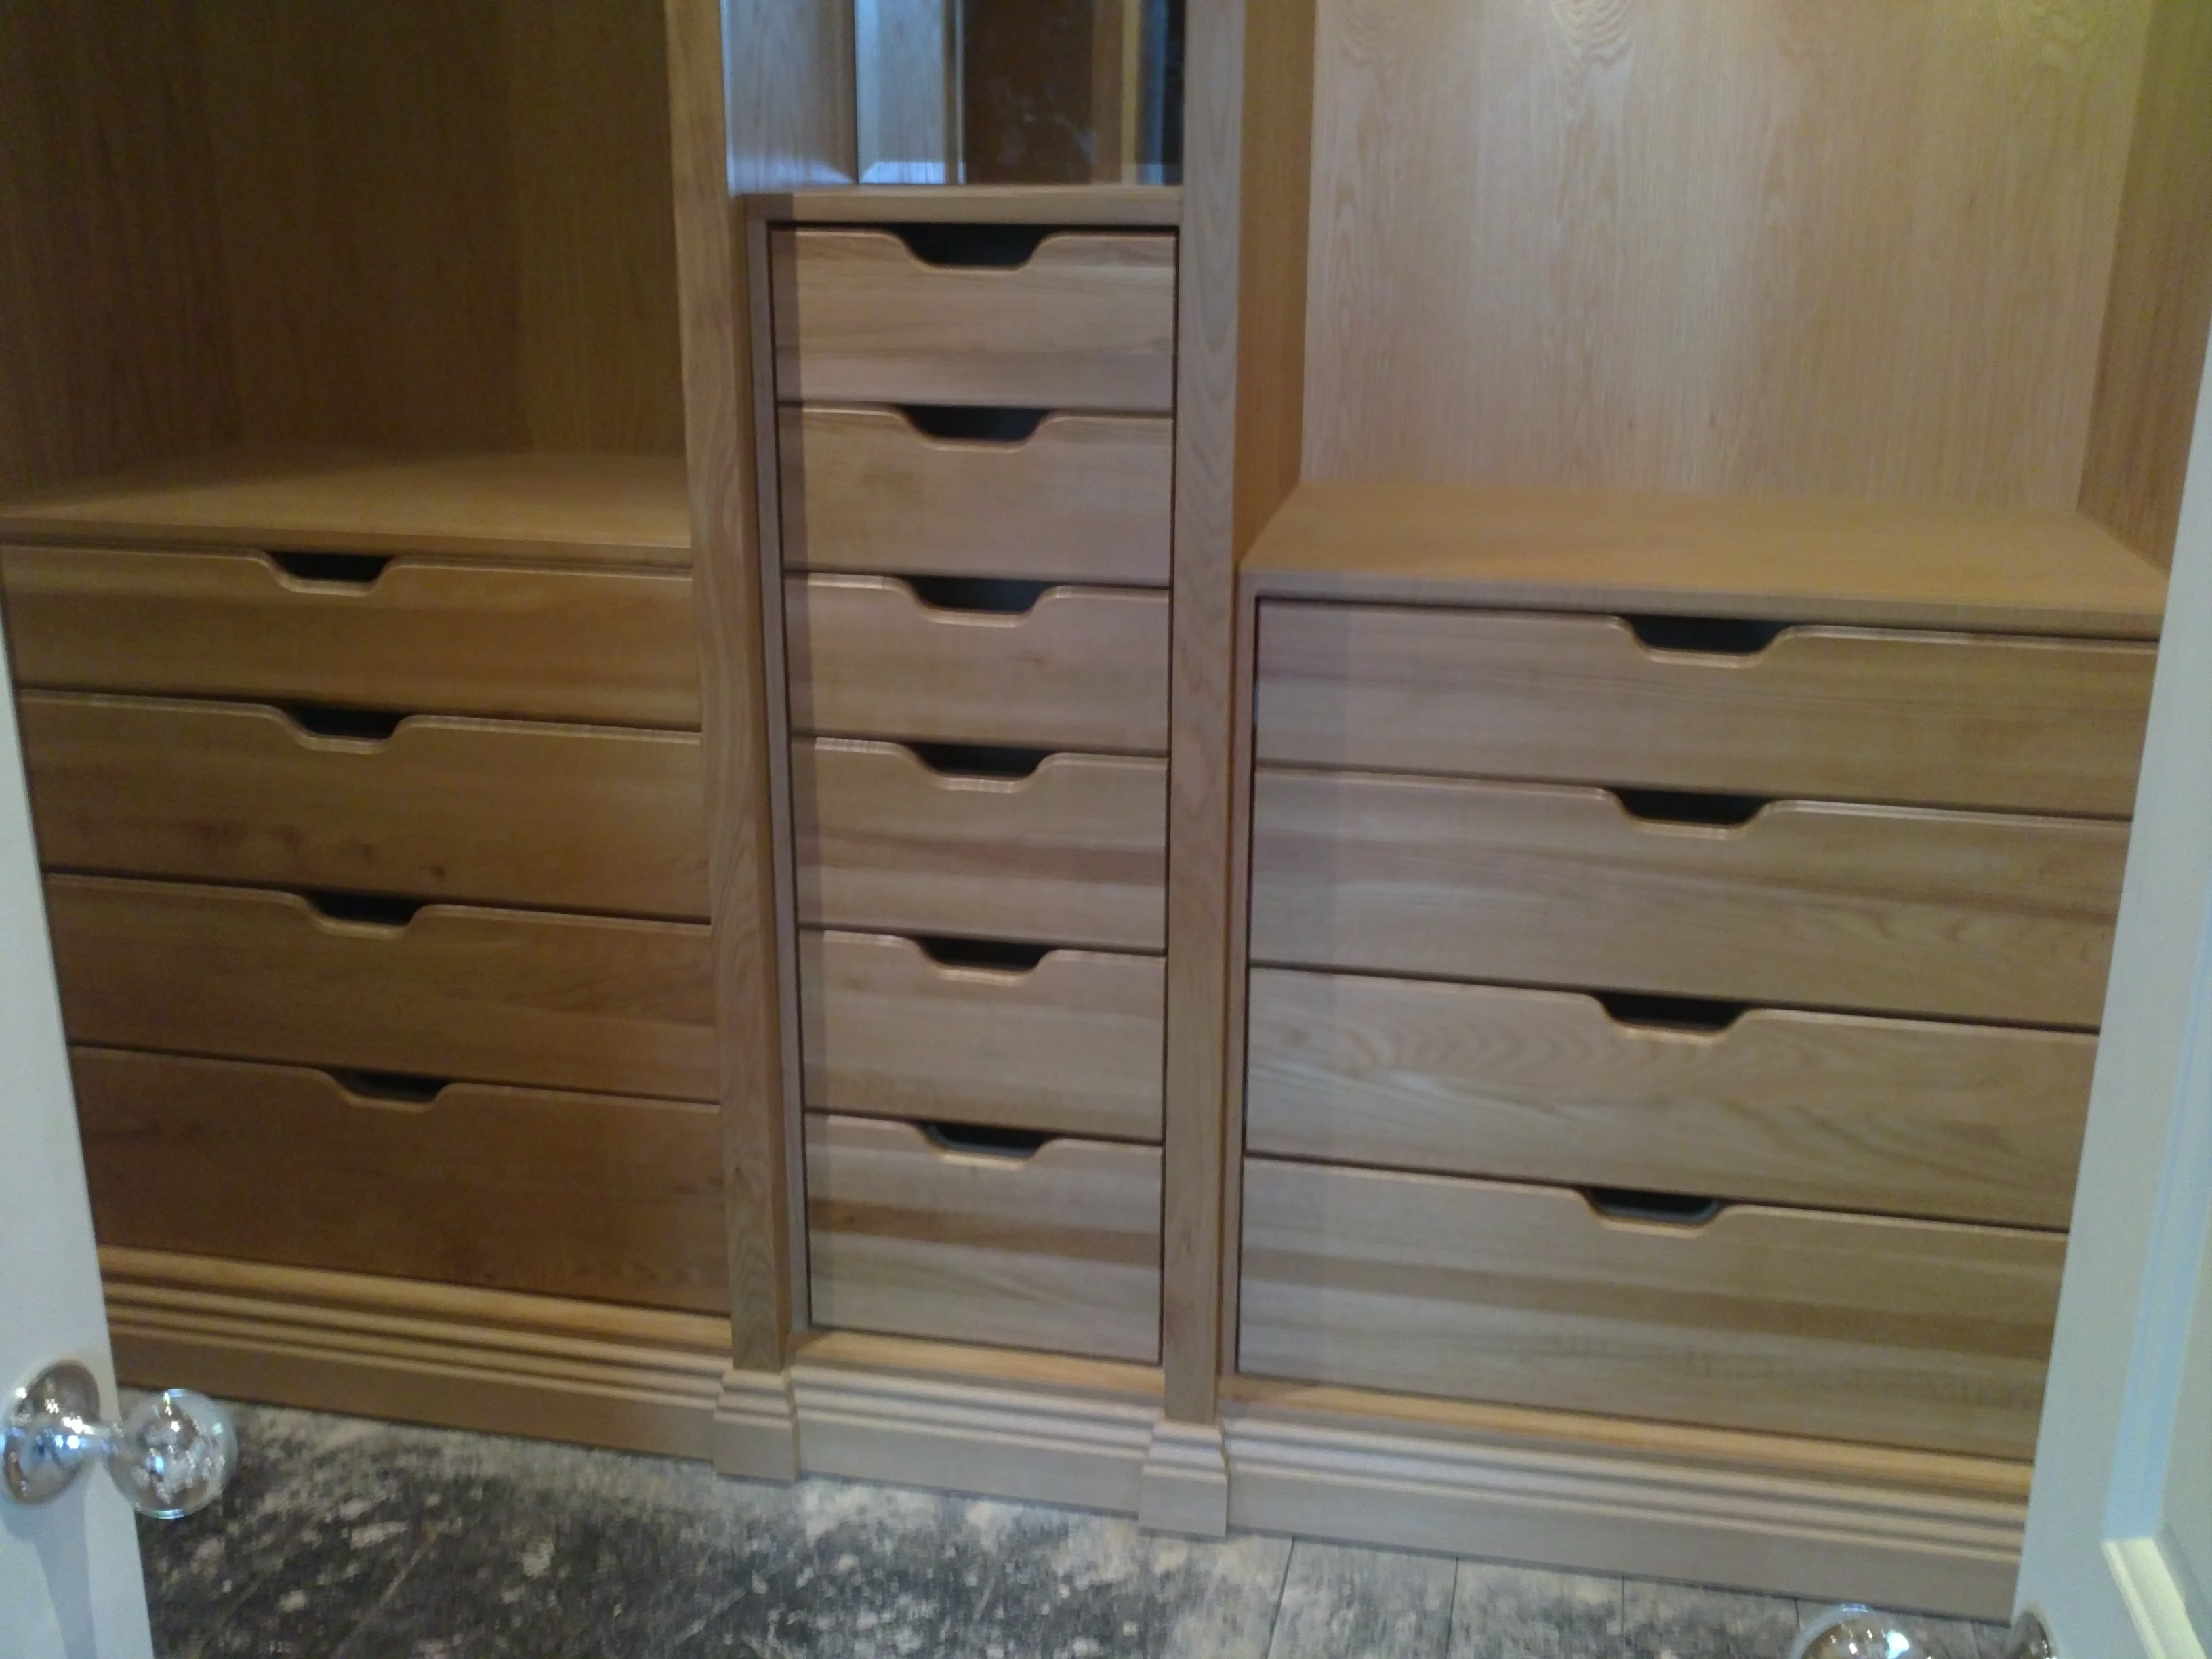 Bespoke Furniture Joiner Southport Intended For Bespoke Built In Furniture (View 9 of 15)